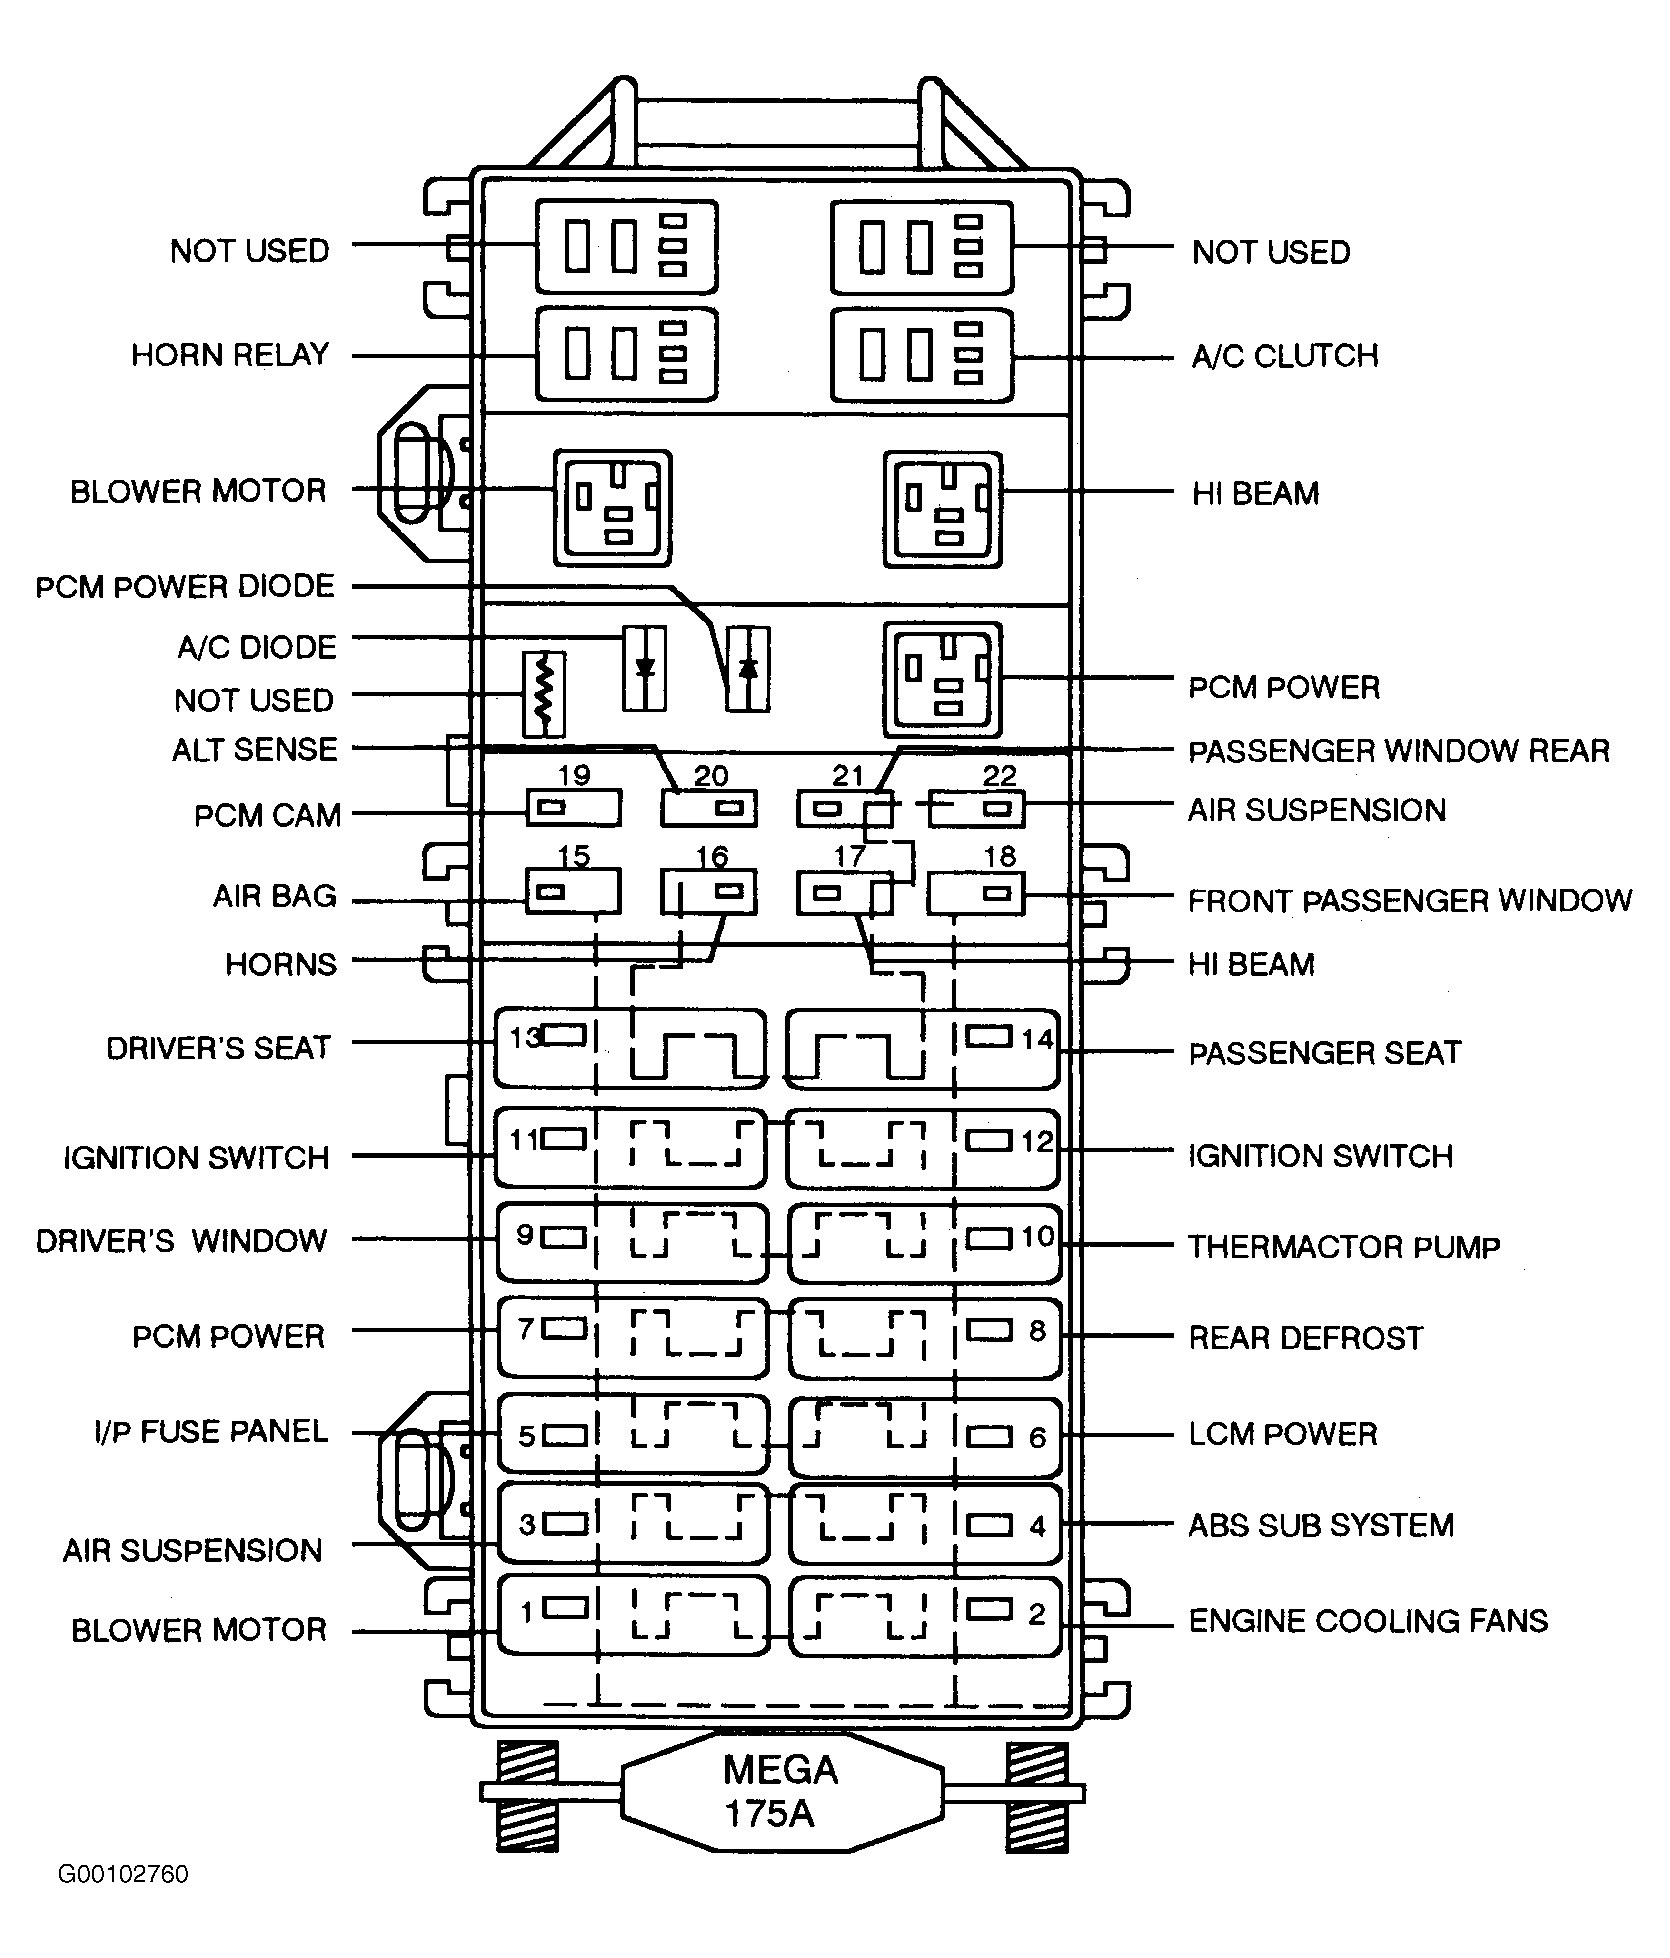 hight resolution of 1998 lincoln continental fuse panel diagram wiring diagram database 2001 lincoln navigator fuse box 1998 lincoln